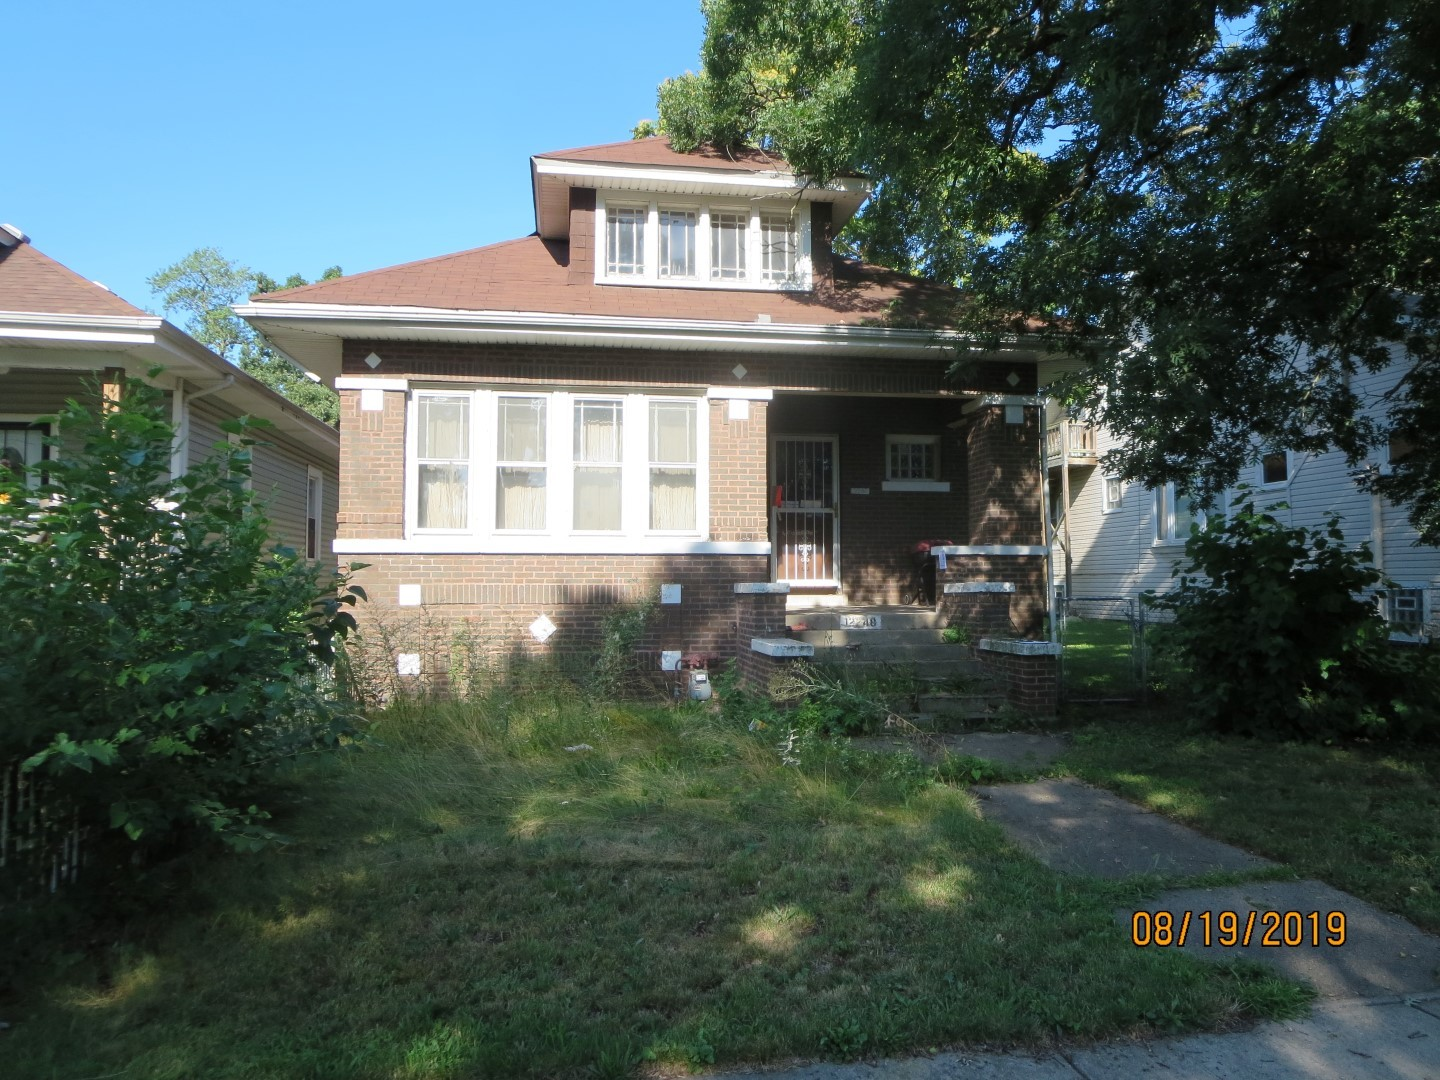 SINGLE FAMILY HOME SOLD AS-IS AND READY FOR A NEW FAMILY.   NOT BANK OWNED AND NOT A SHORT SALE, OWNERS ARE LOCAL AND MOTIVATED.  THIS HOME IS BEING SOLD AS-IS, SO PLEASE INSPECT PRIOR TO SUBMITTING AN OFFER.  PLEASE NOTE: 0% TAX PRORATIONS ARE OFFERED, THE SELLER WILL PAY CURRENT AND ALL PRIOR TAX BUT 0% CREDIT FOR FUTURE BILLS.  SPECIAL WARRANTY DEED AT CLOSING. NO SURVEY.  FOR FASTER RESPONSE PLEASE USE SELLERS CONTRACT, ADDENDUM AND DISCLOSURES UNDER DOCUMENTS. EMAILING AGENT IS PREFERRED OVER CALLS .